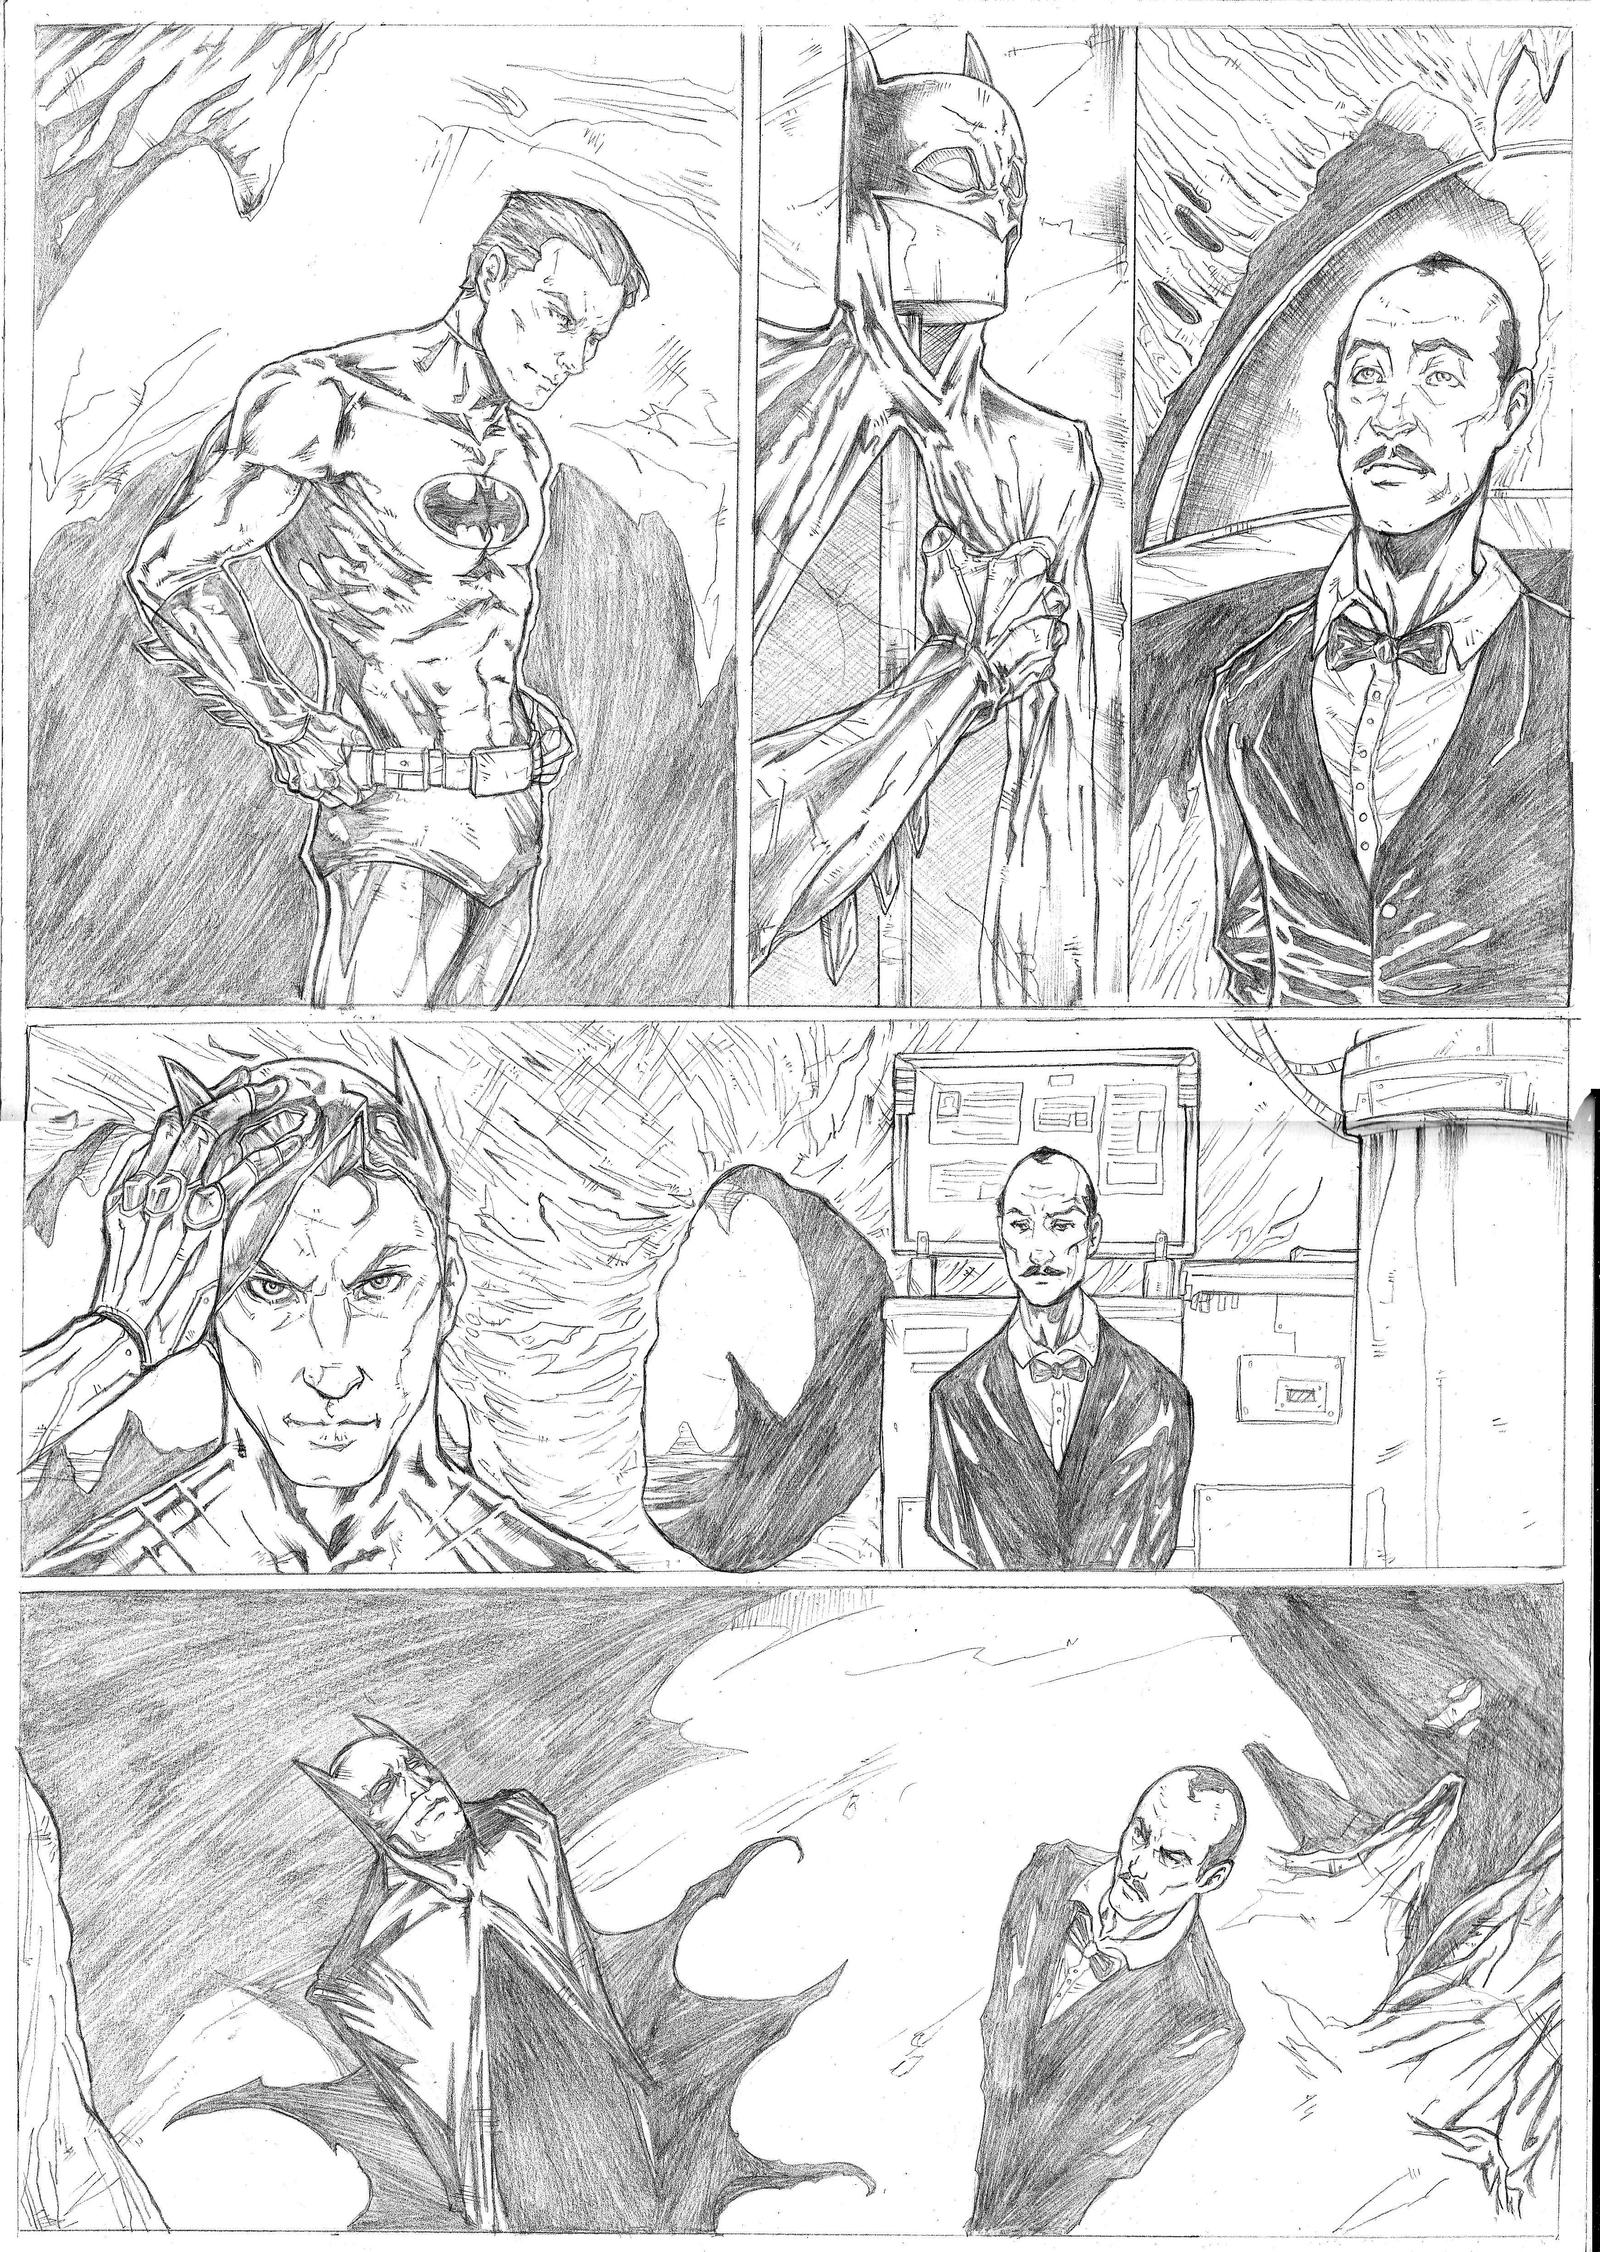 Batman page 1 Sample - A3 pencil by IgorChakal